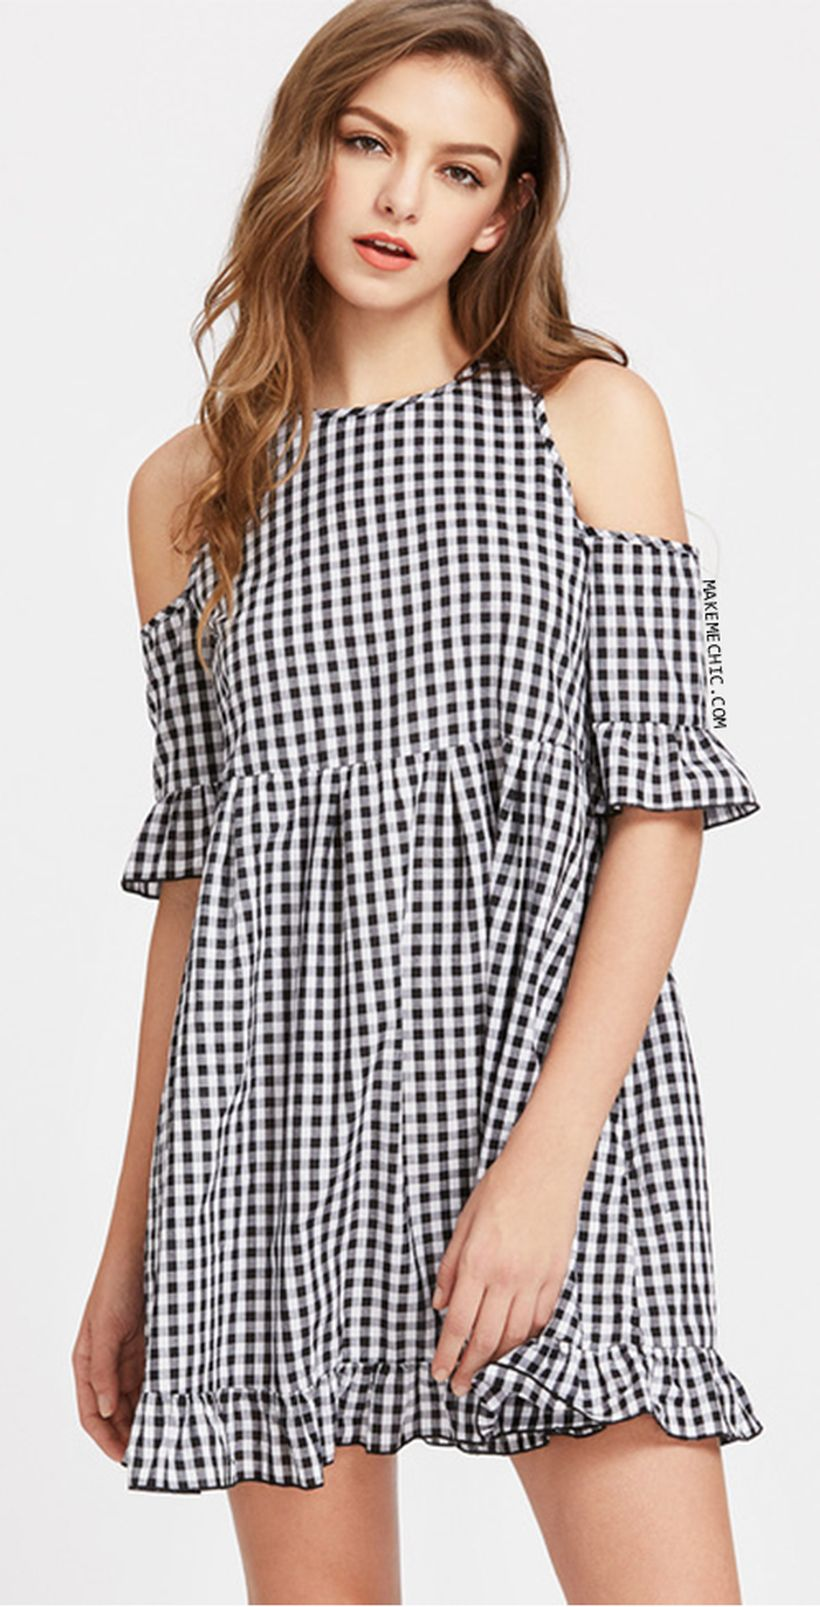 Stylish open shoulder dress outfits 2017 57